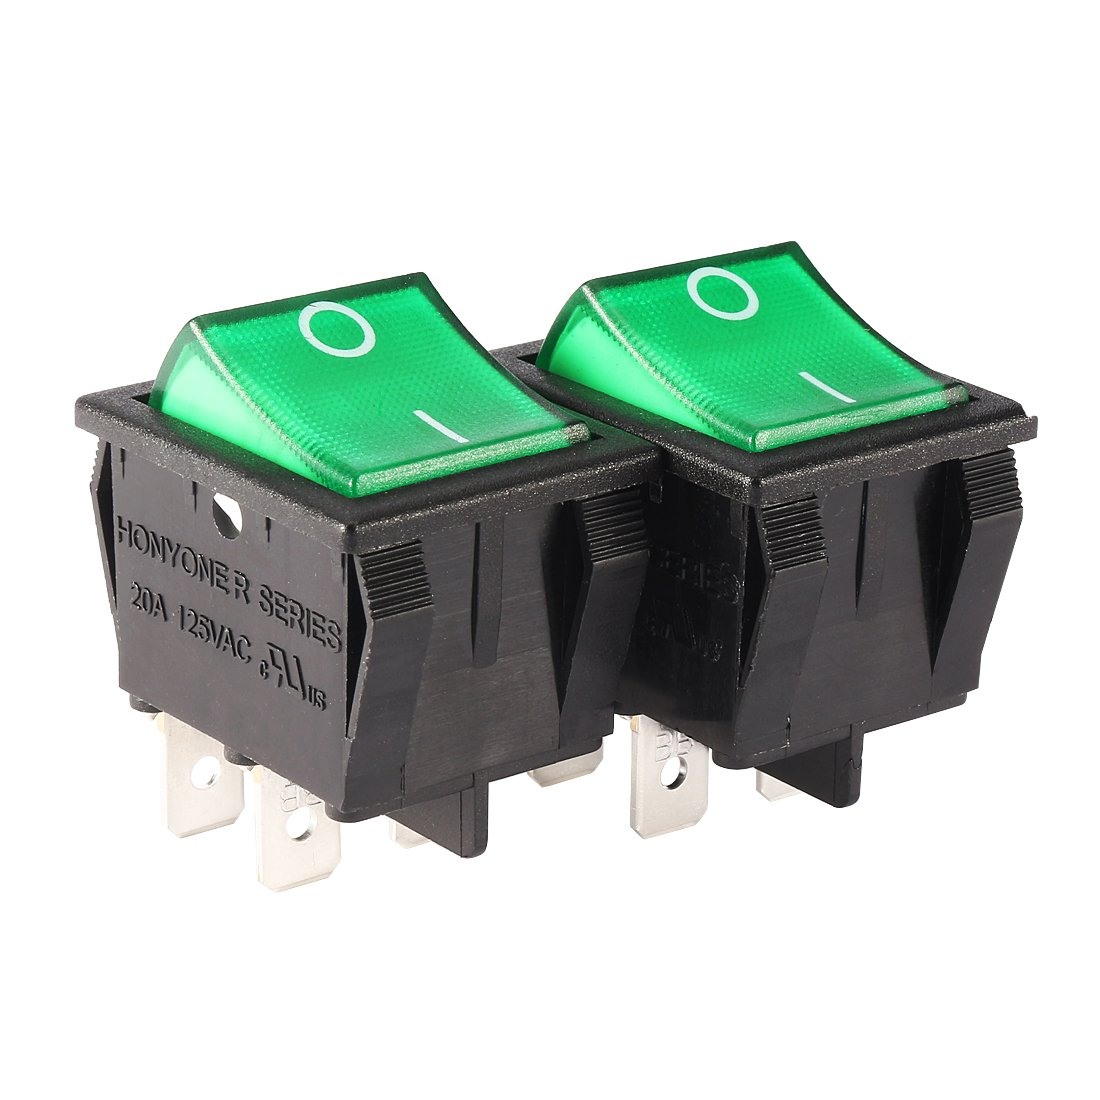 Aexit 2Pcs AC Electrical Equipment 20A/125V 22A/250V DPST Green LED Light Rocker Switch Toggle Switches UL Listed